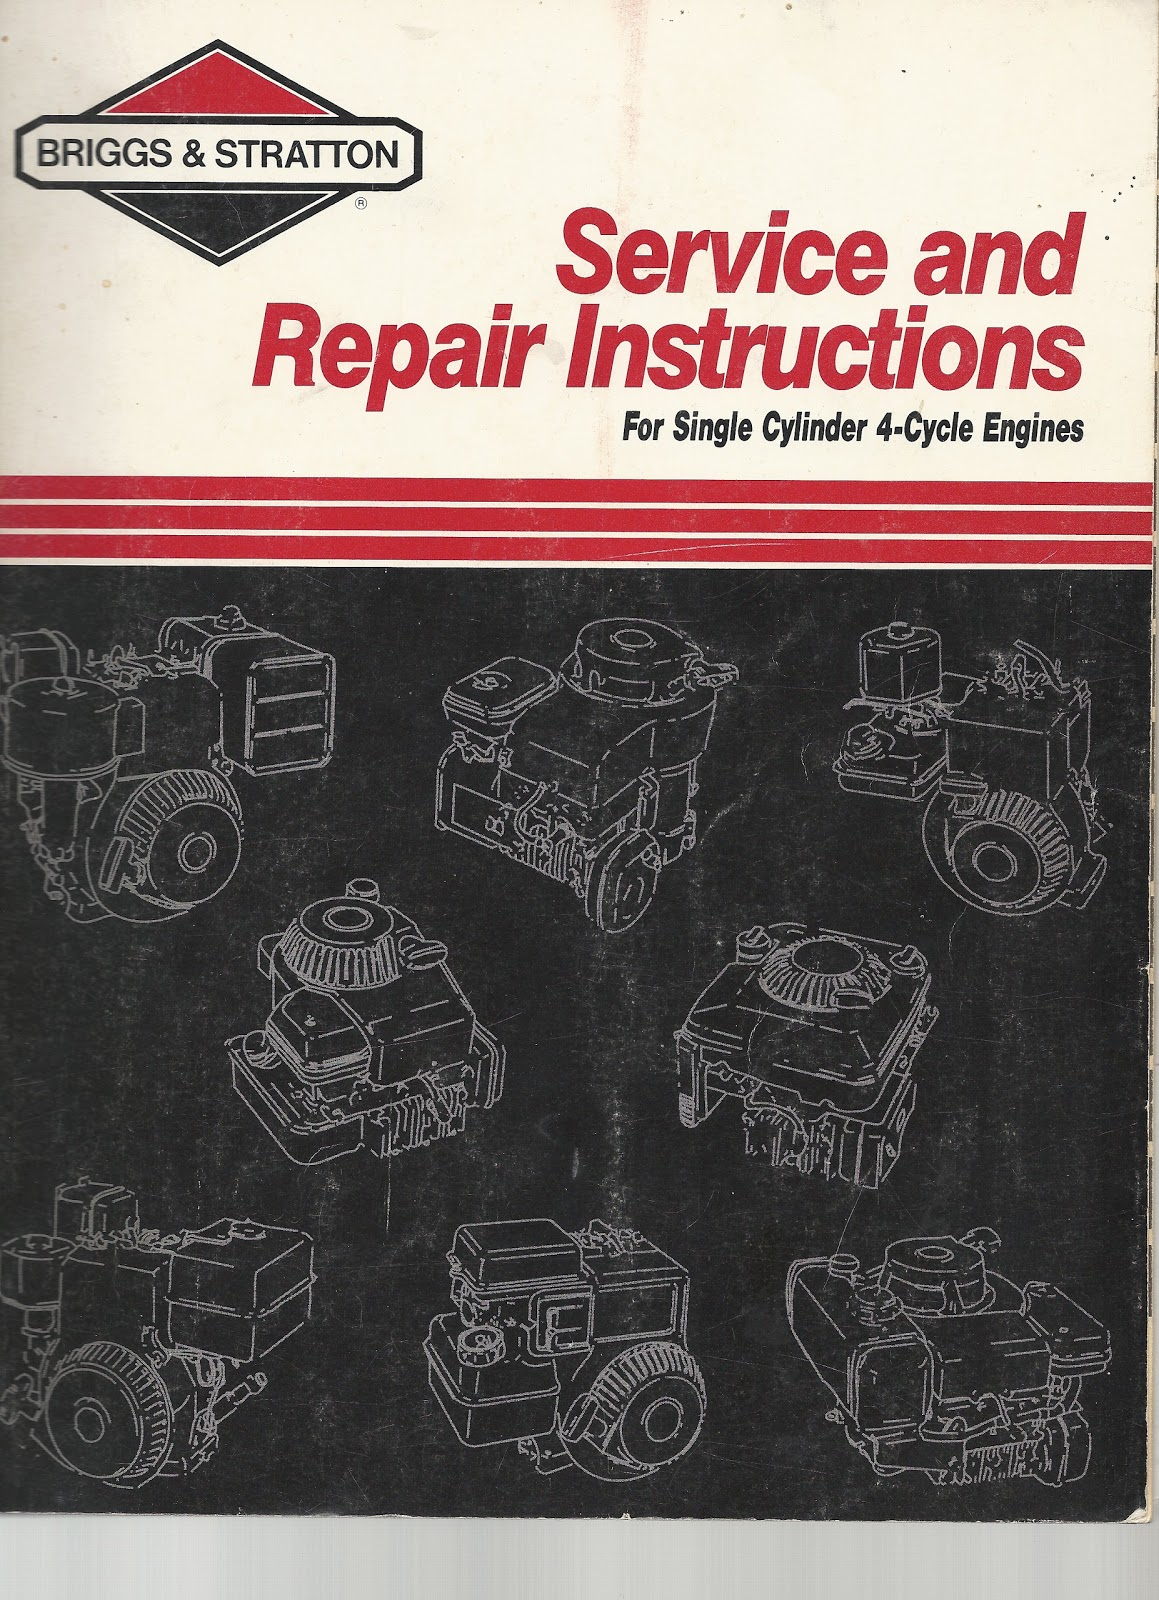 4 stroke rebuild post the fourth small engine repair briggs and stratton 5hp engine service manual briggs and stratton 12.5 hp engine service manual